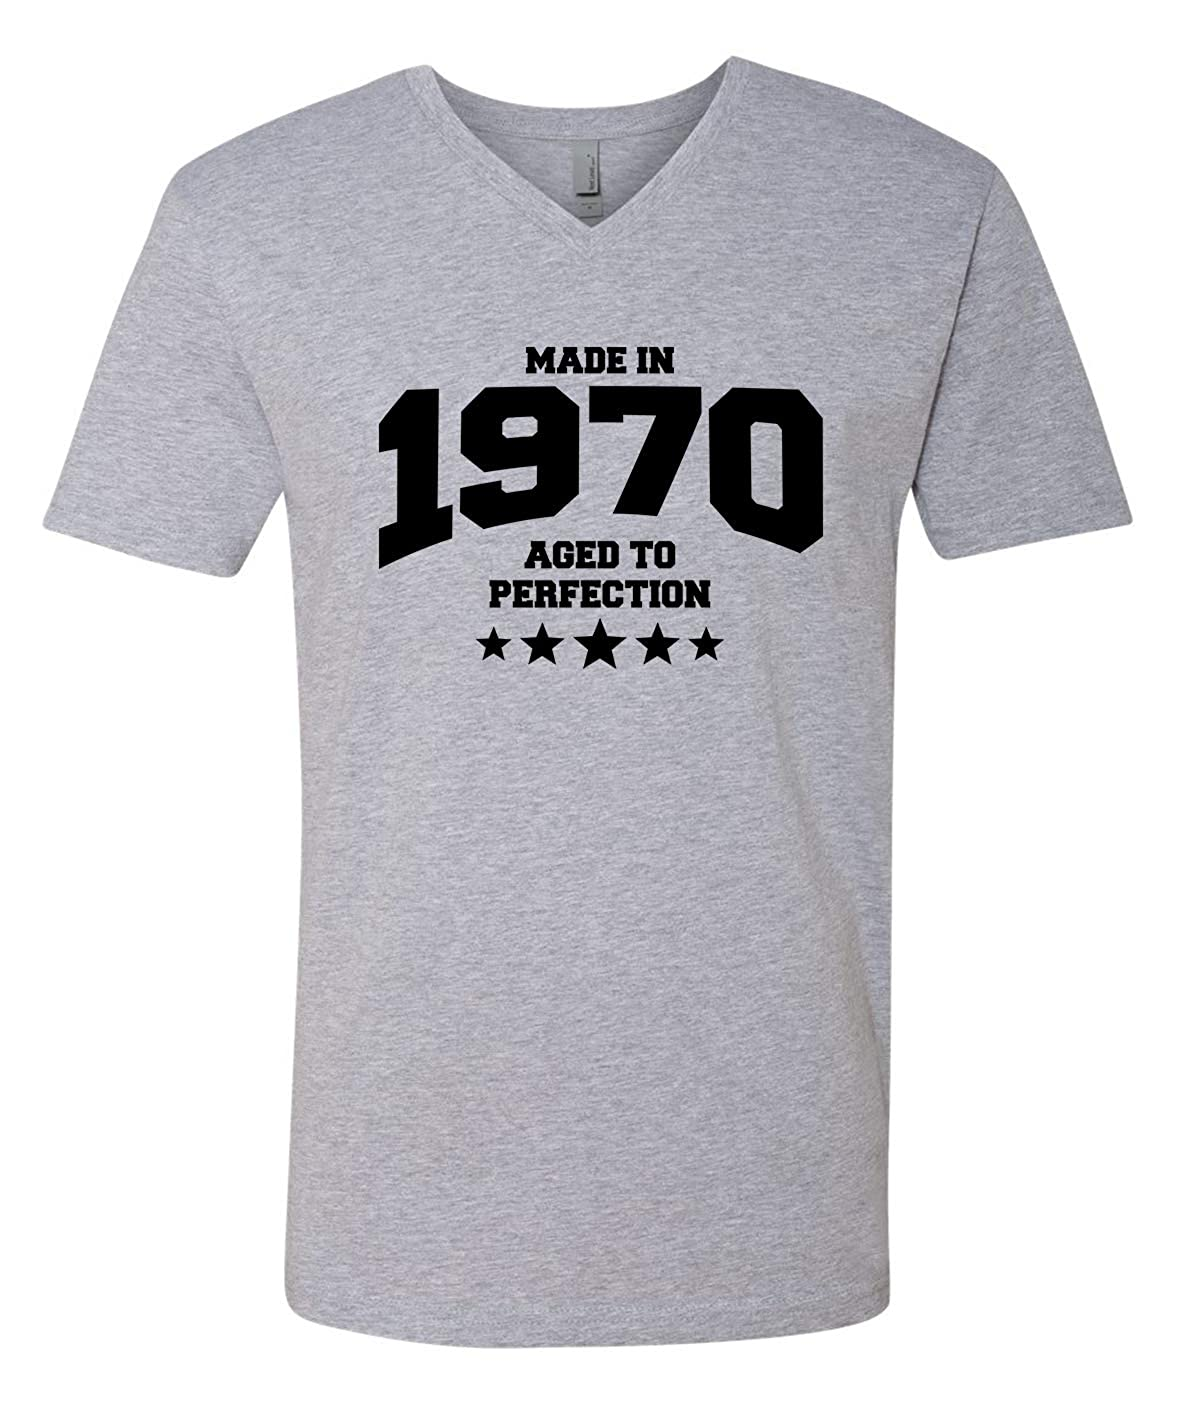 Tenacitee Mens Athletic Aged to Perfection 1970 T-Shirt